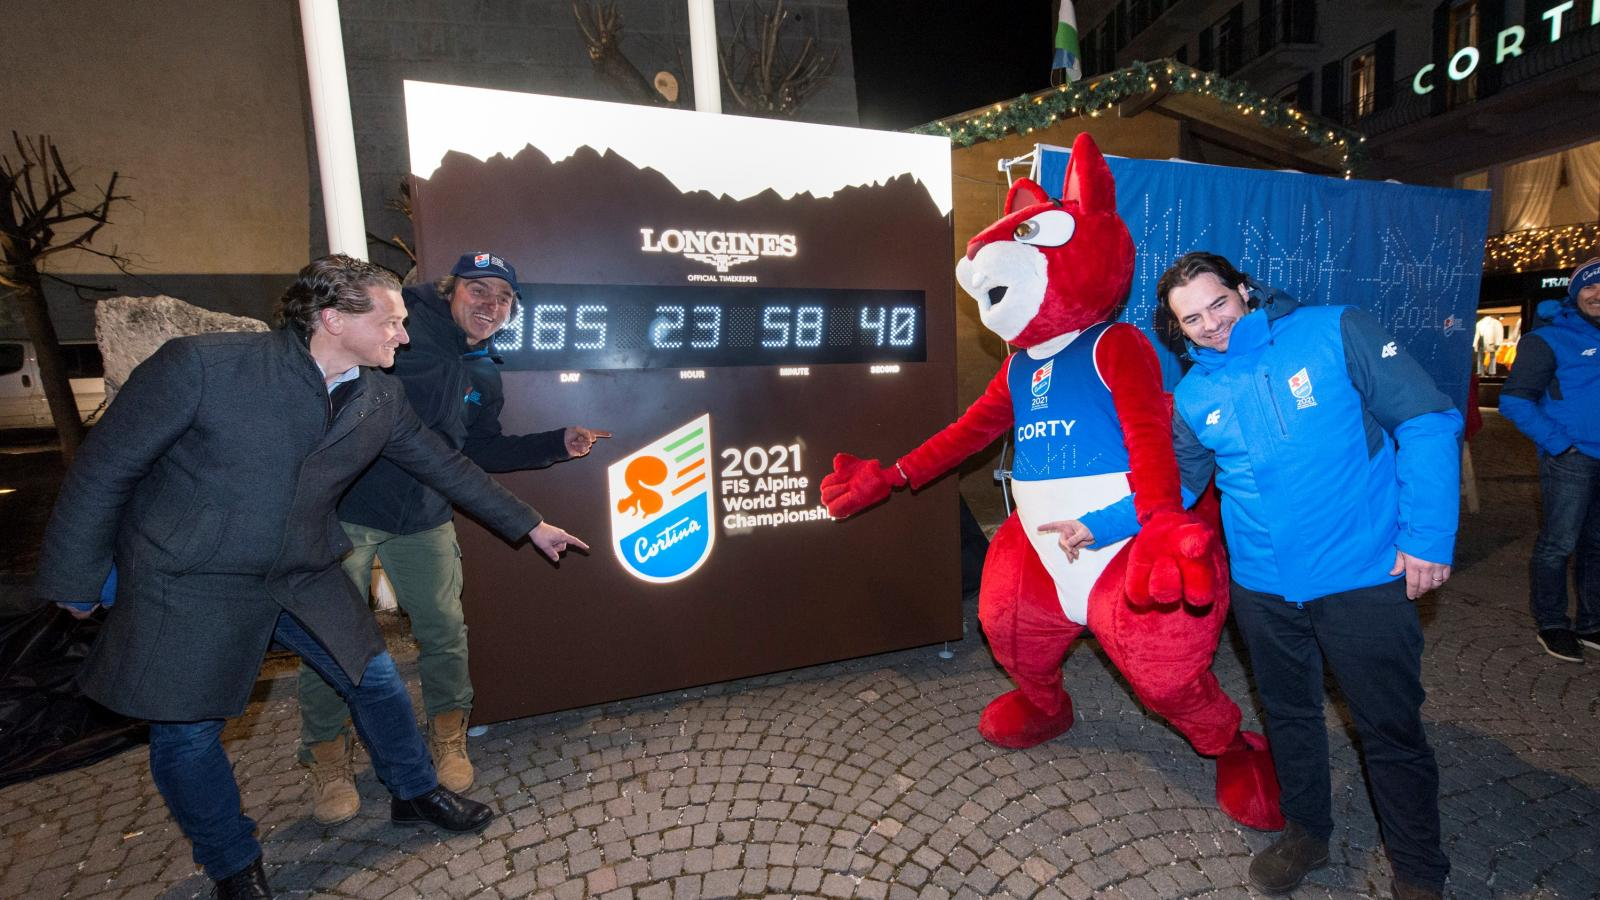 365 days until Cortina 2021: new Longines digital countdown clock unveiled in Cortina